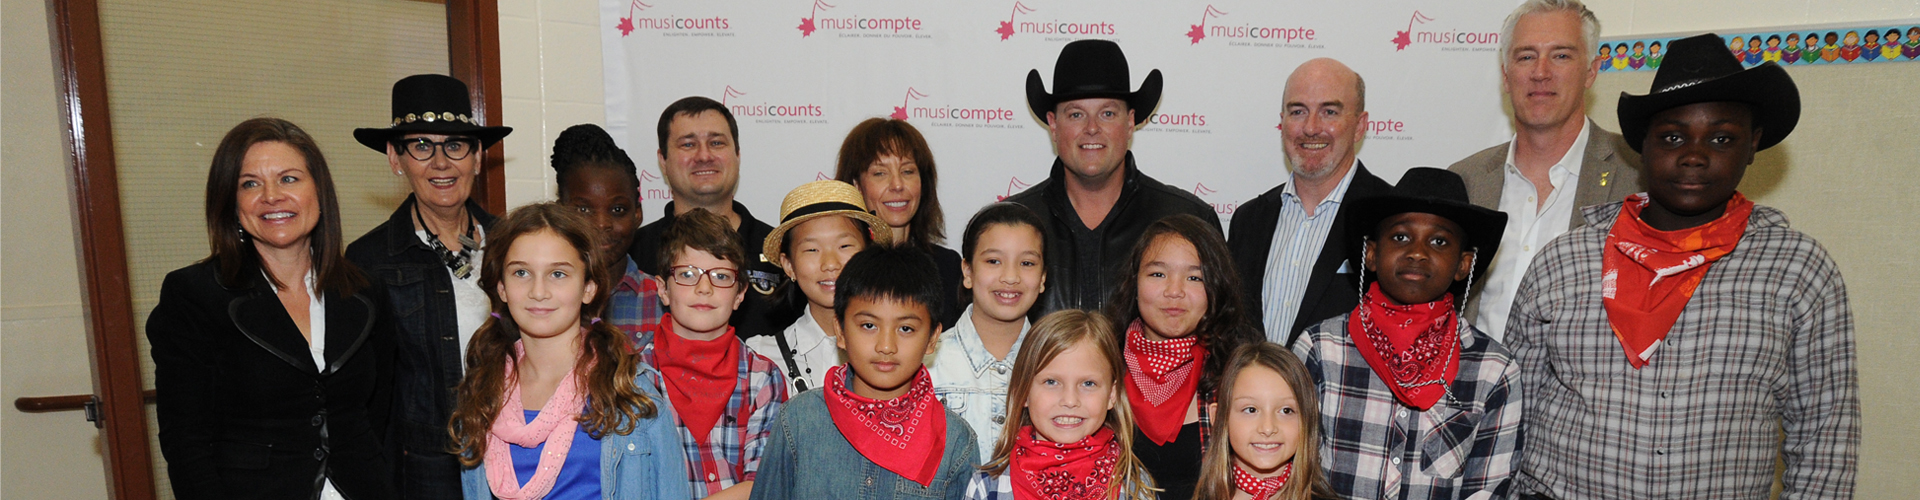 gord-bamford-foundation-causes